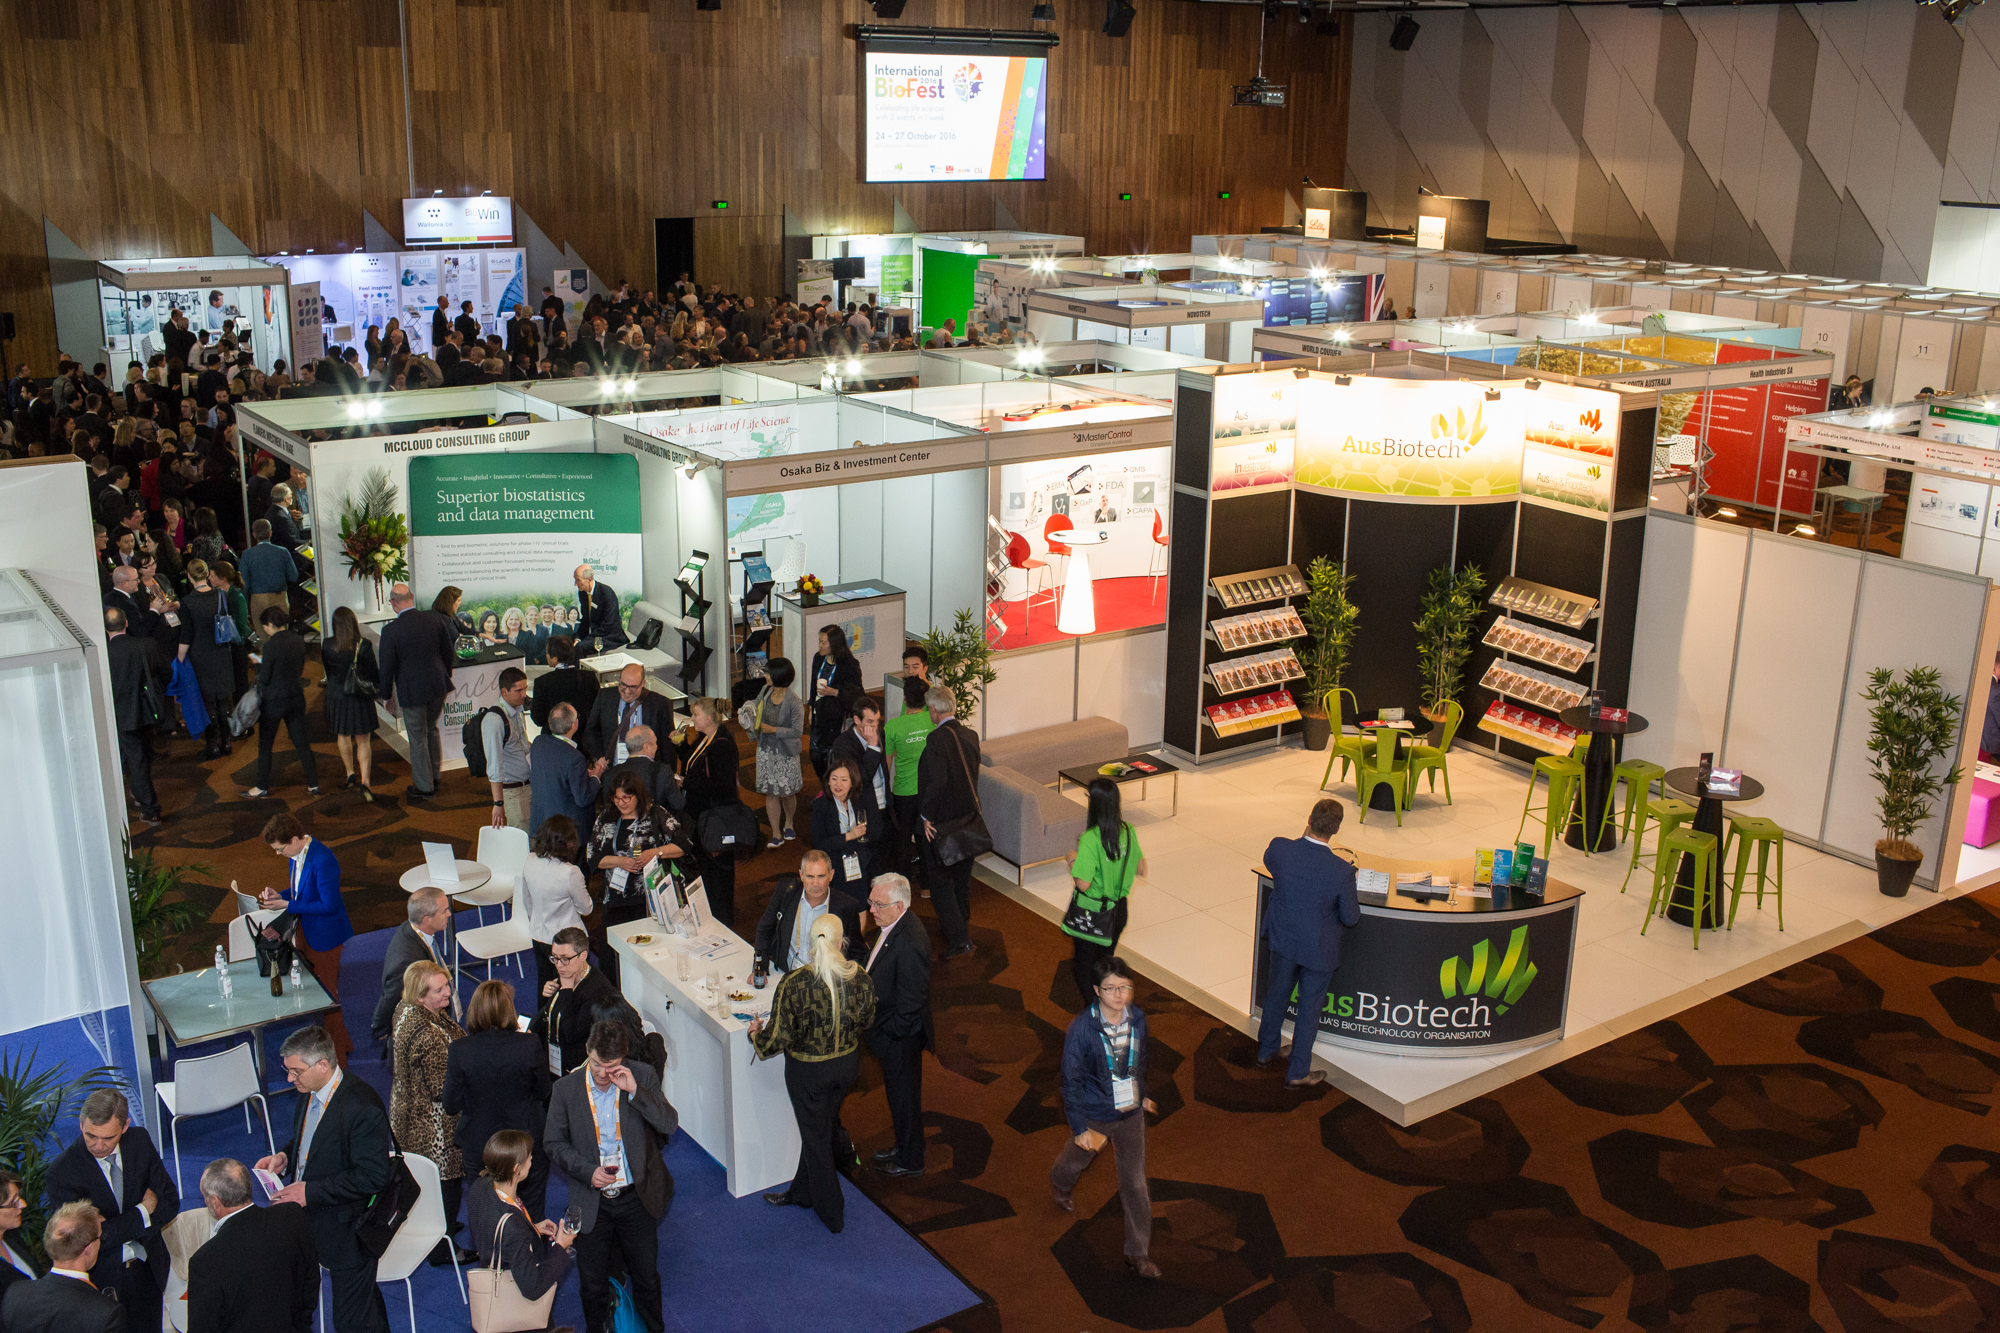 AusBiotech exhibition floor